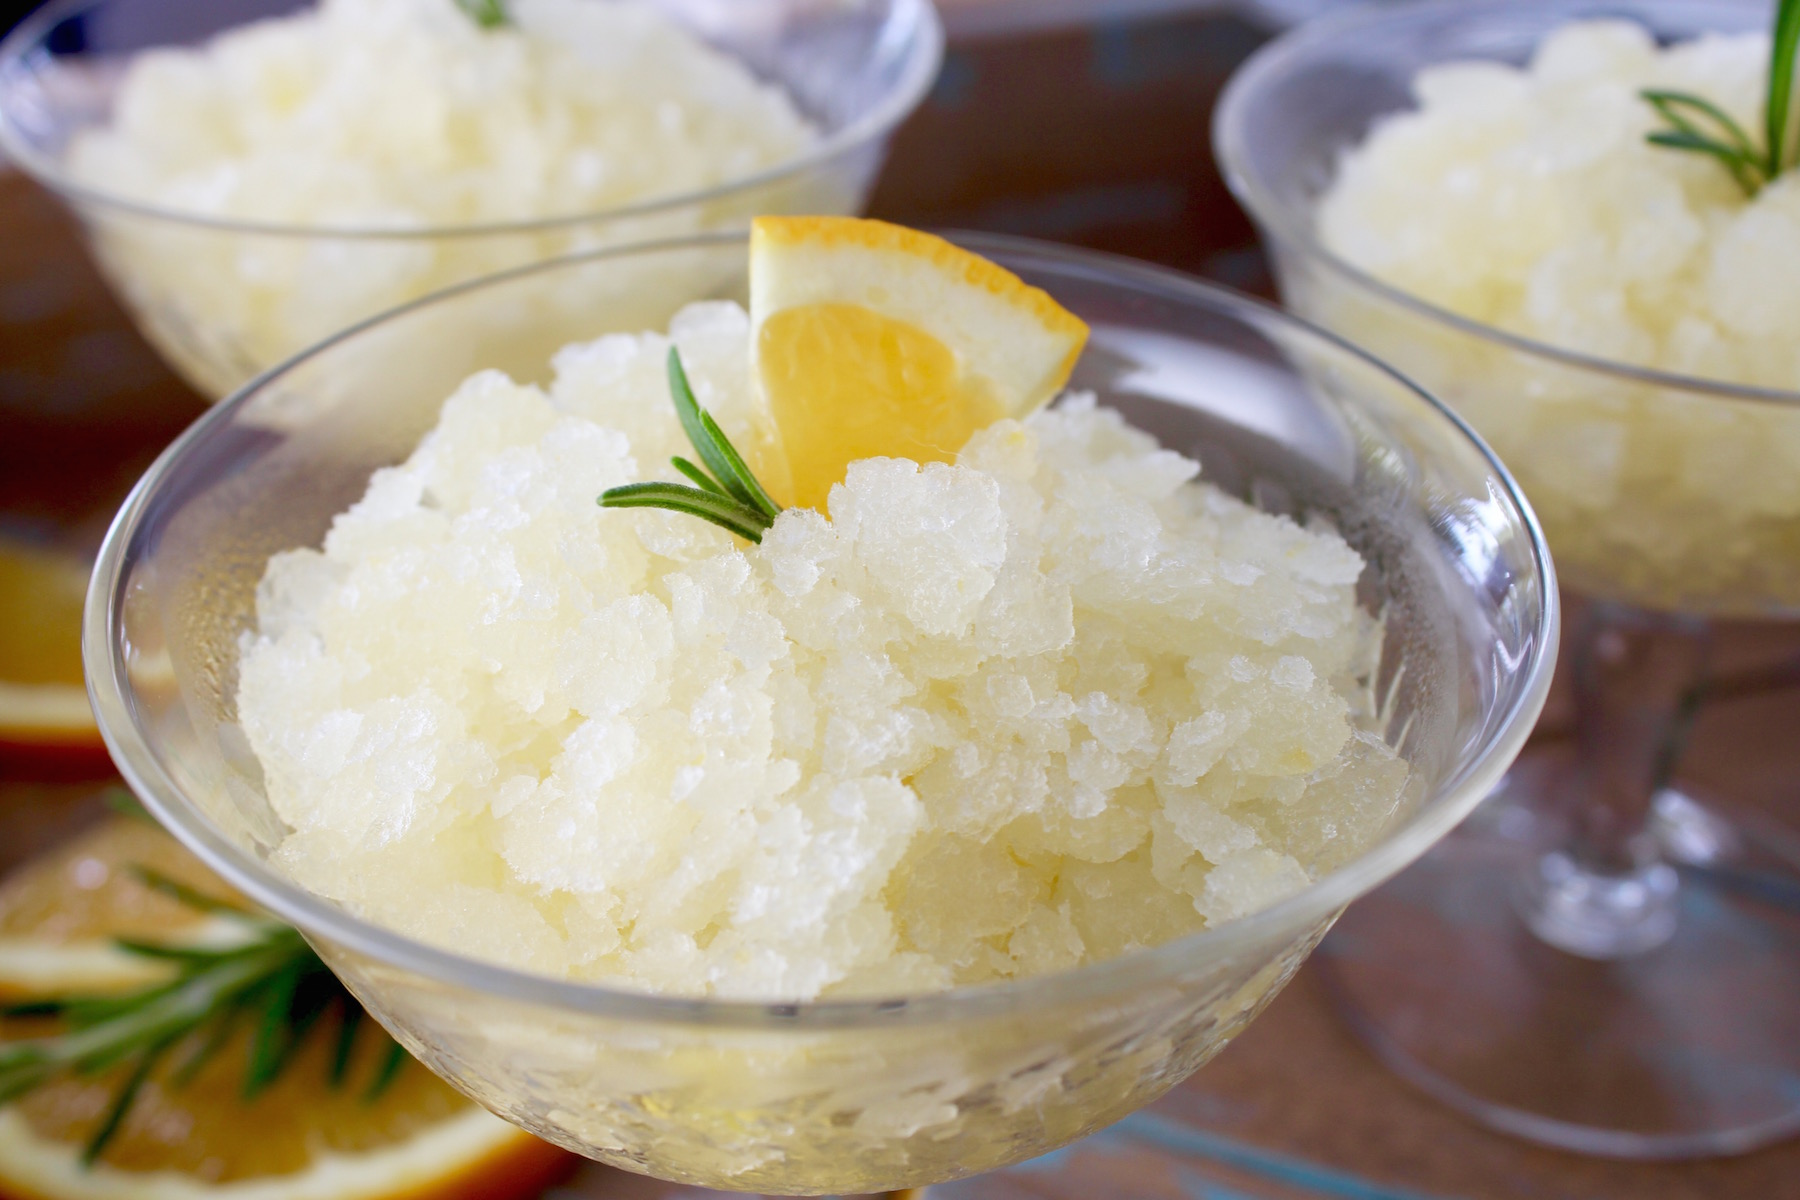 Lemon Orange Rosemary Granita